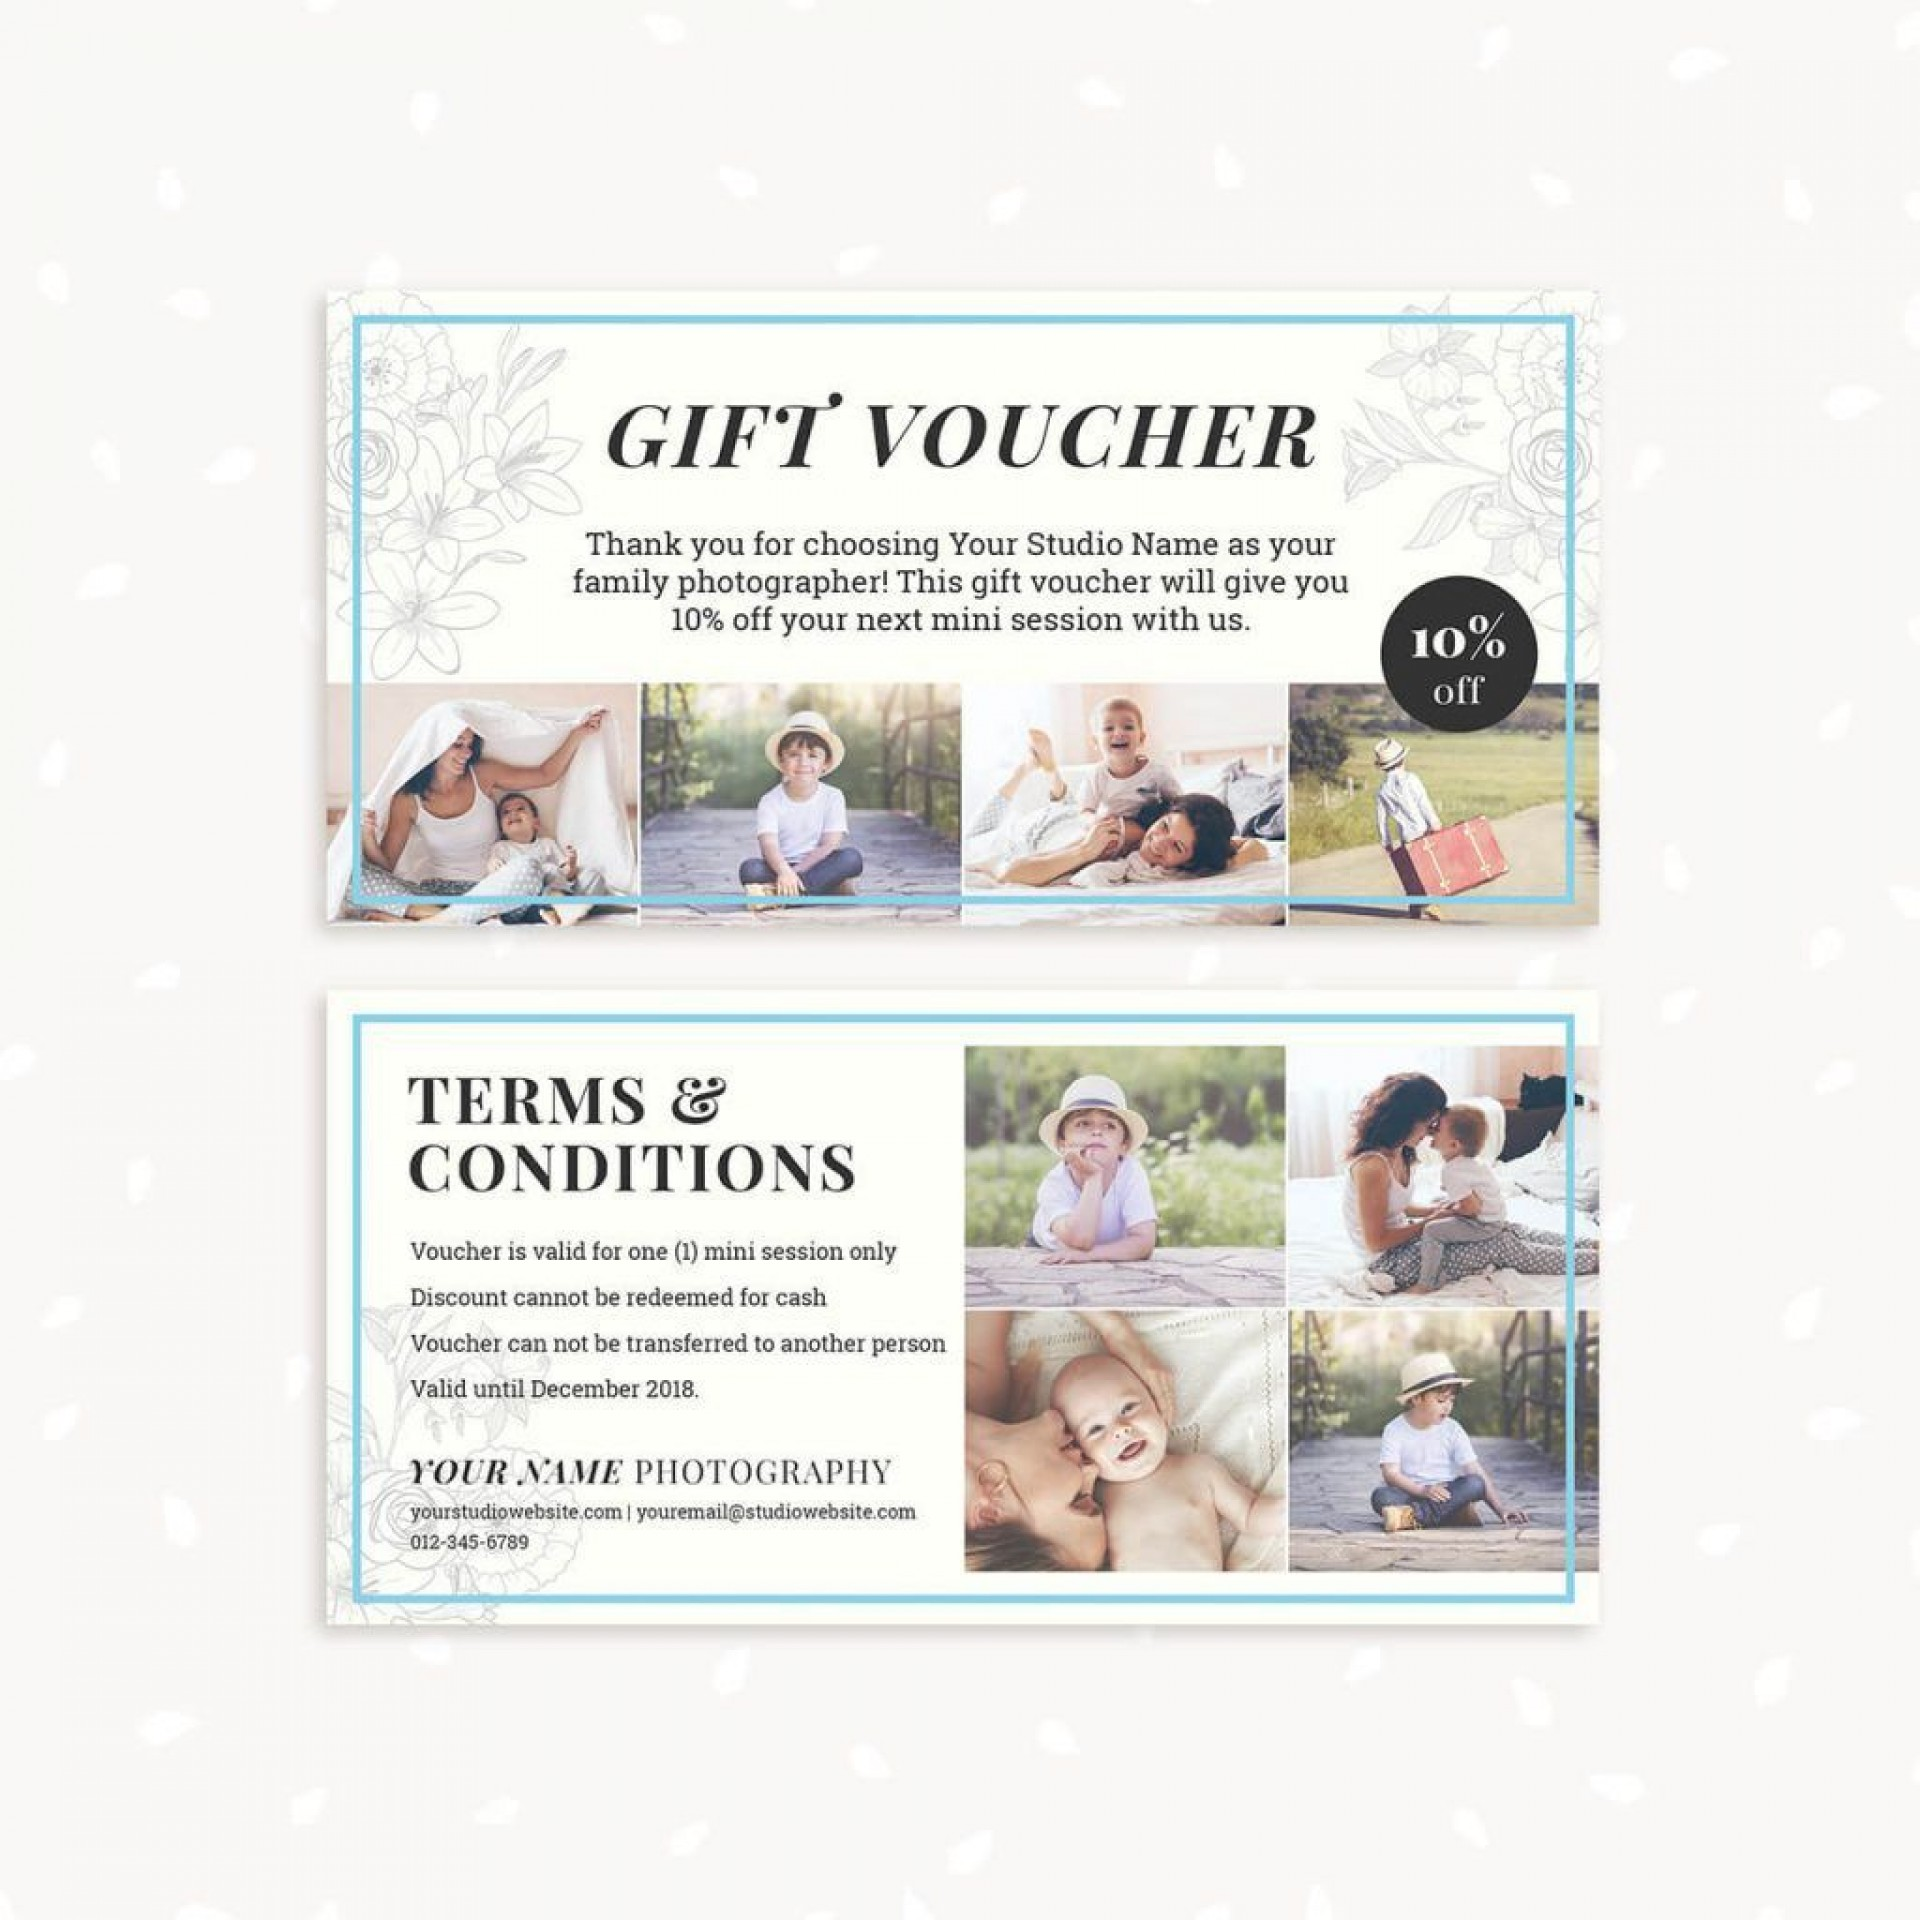 002 Exceptional Photography Session Gift Certificate Template Concept  Photo Free1920